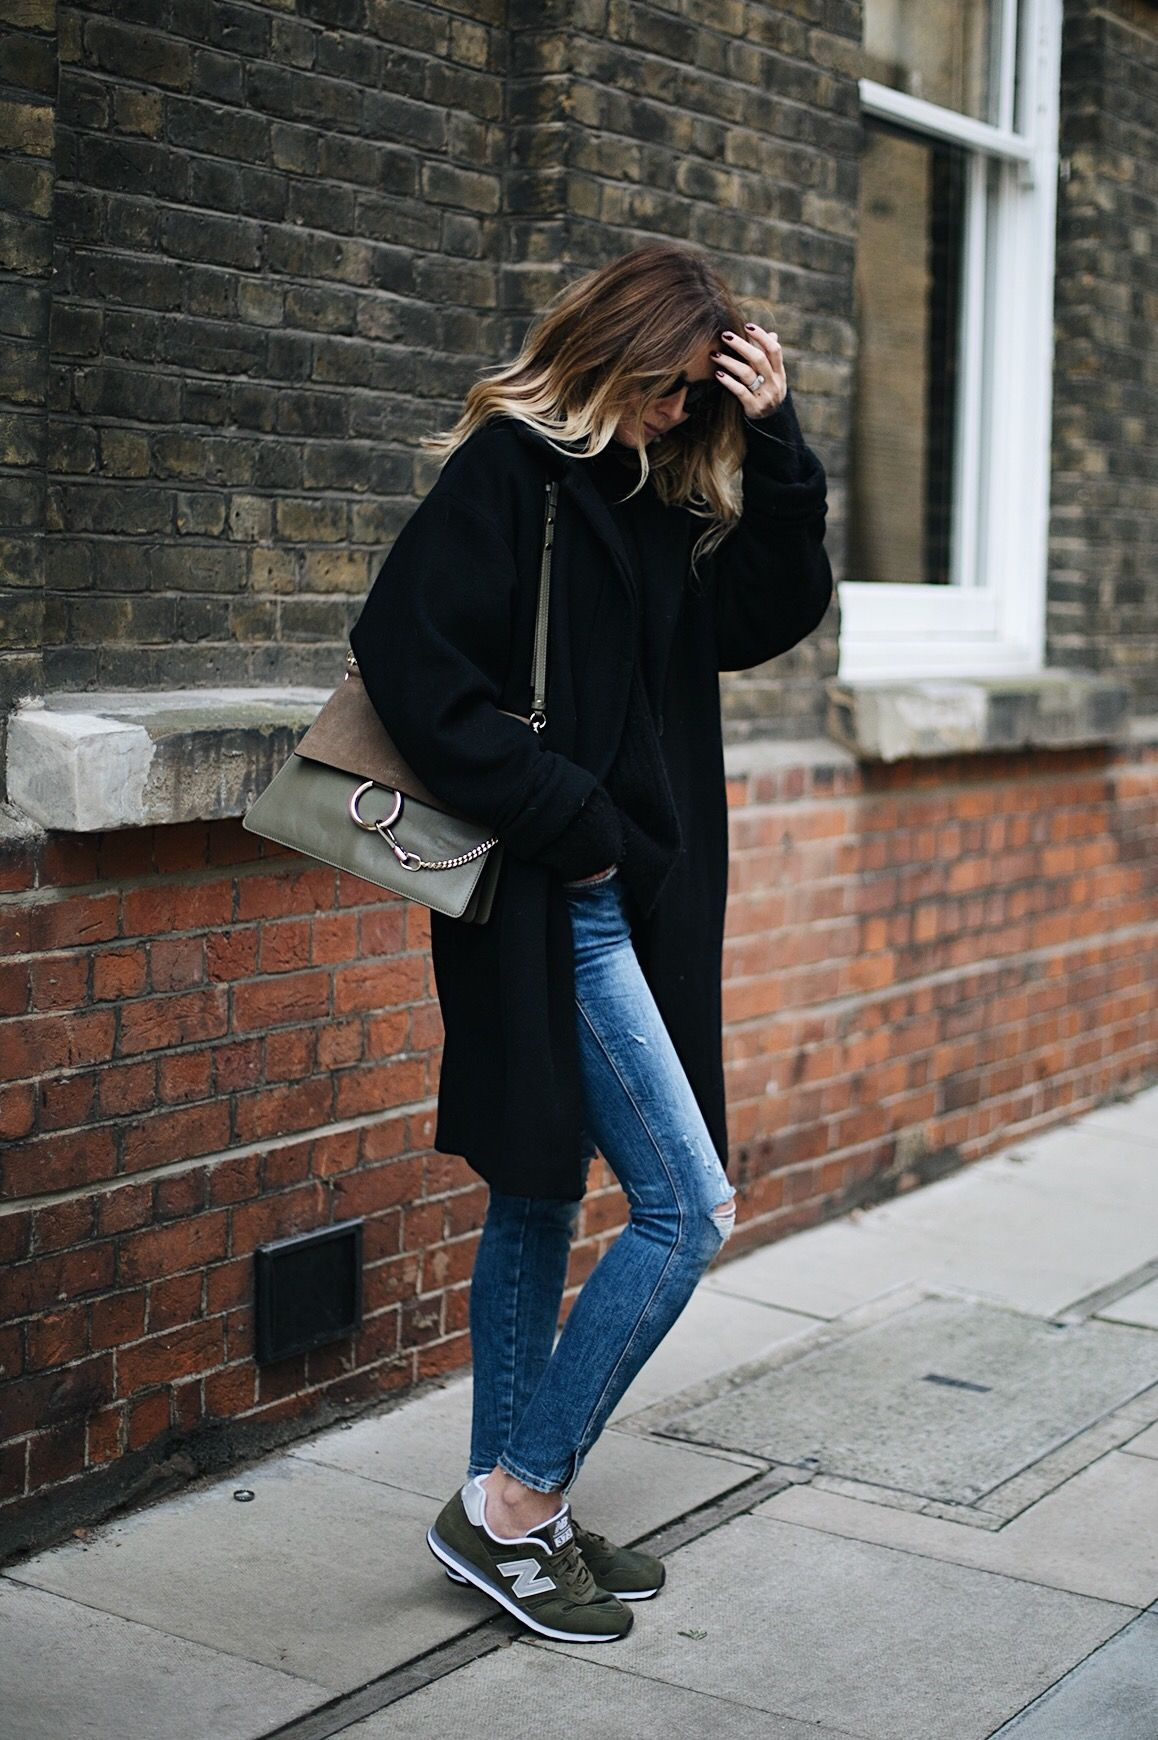 Winter sneakers outfit